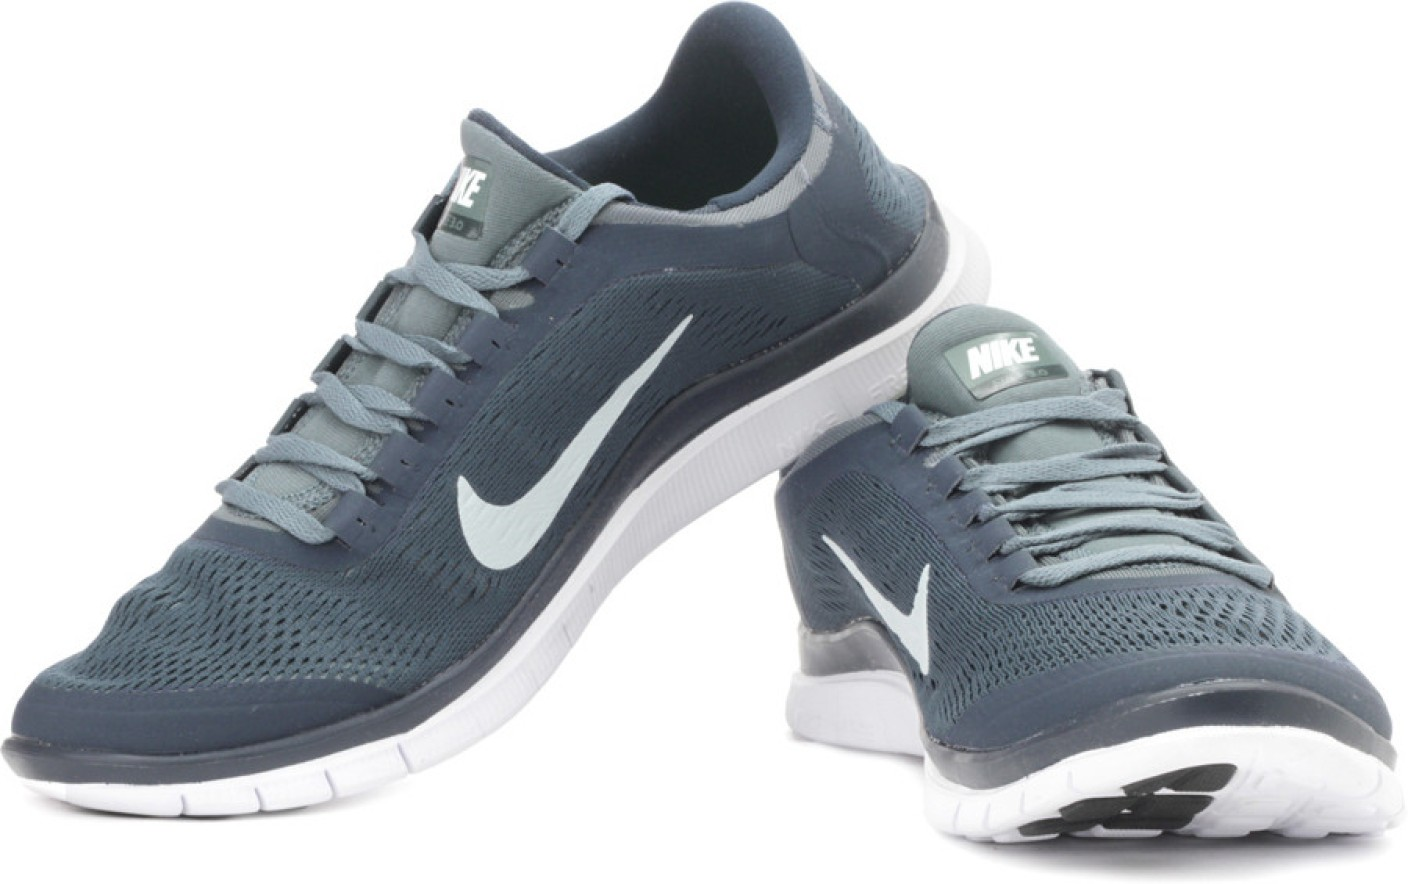 nike free 3.0 v5 running shoes online india